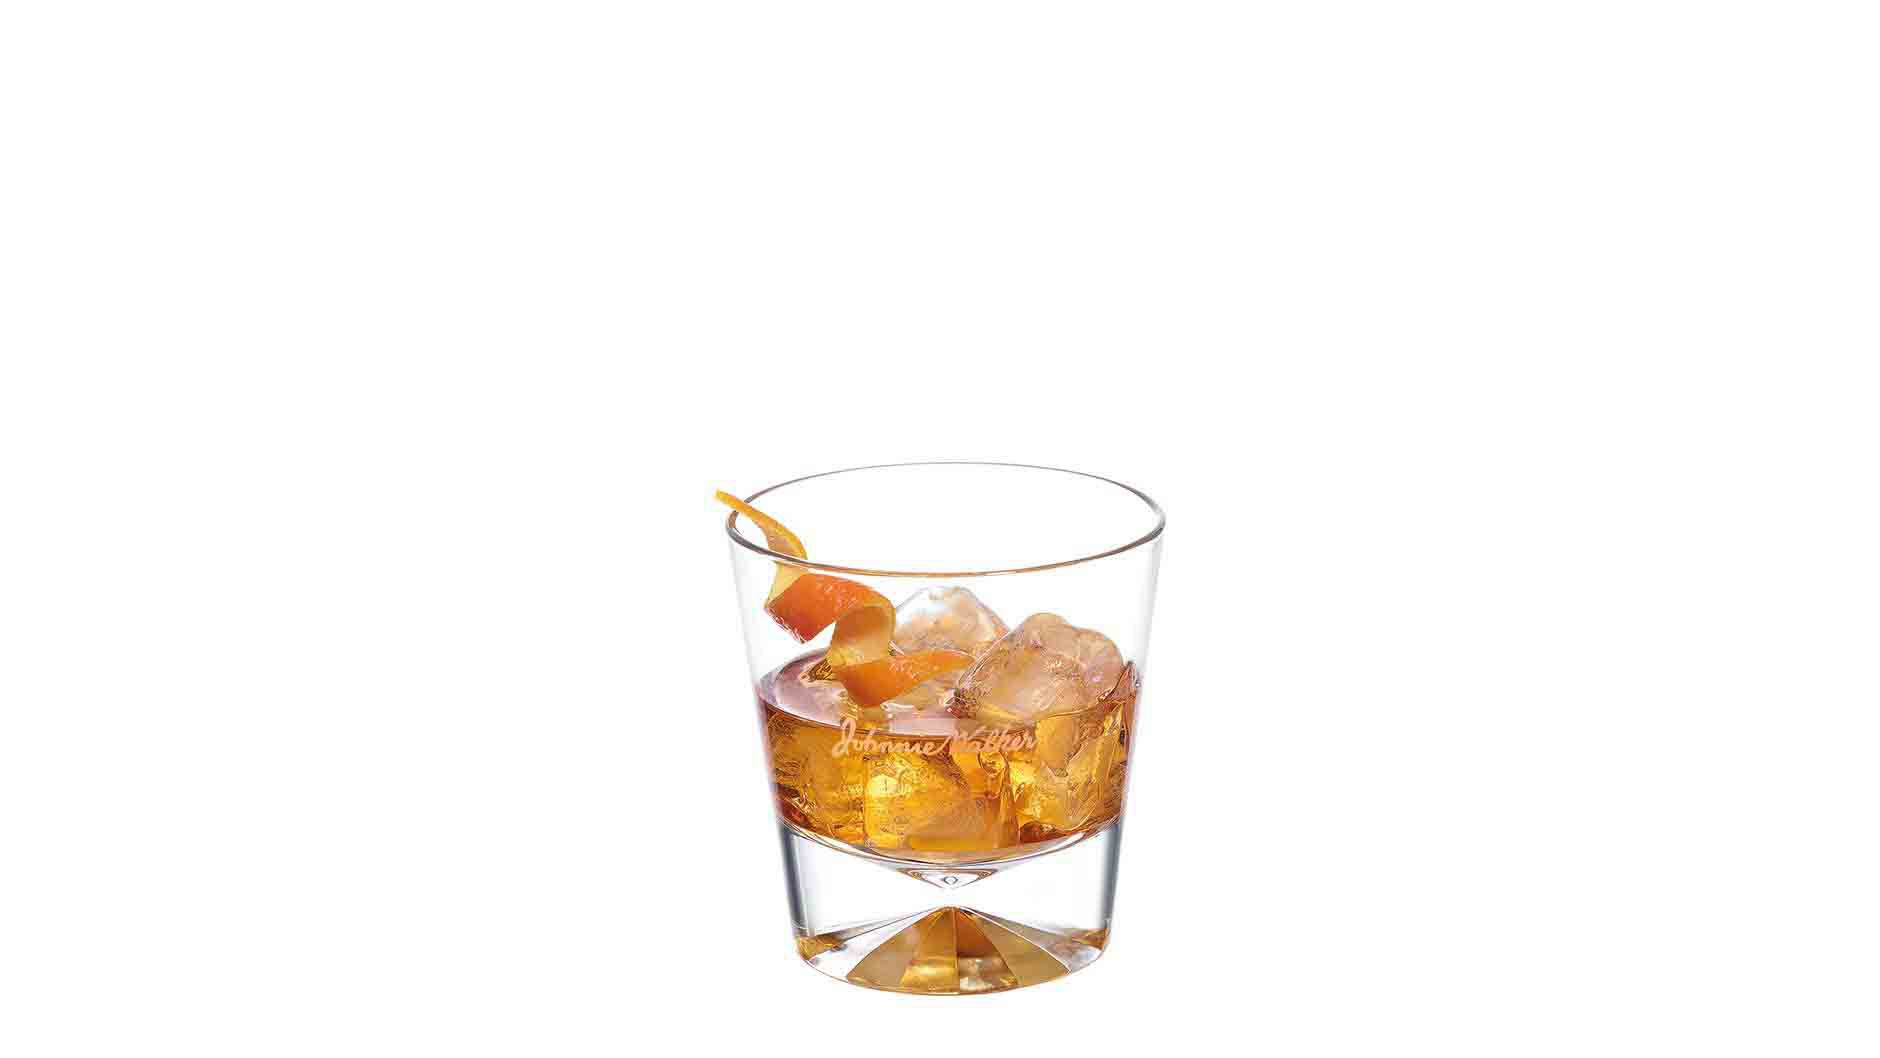 Johnnie Walker Black Old Fashioned cocktail in a tumbler